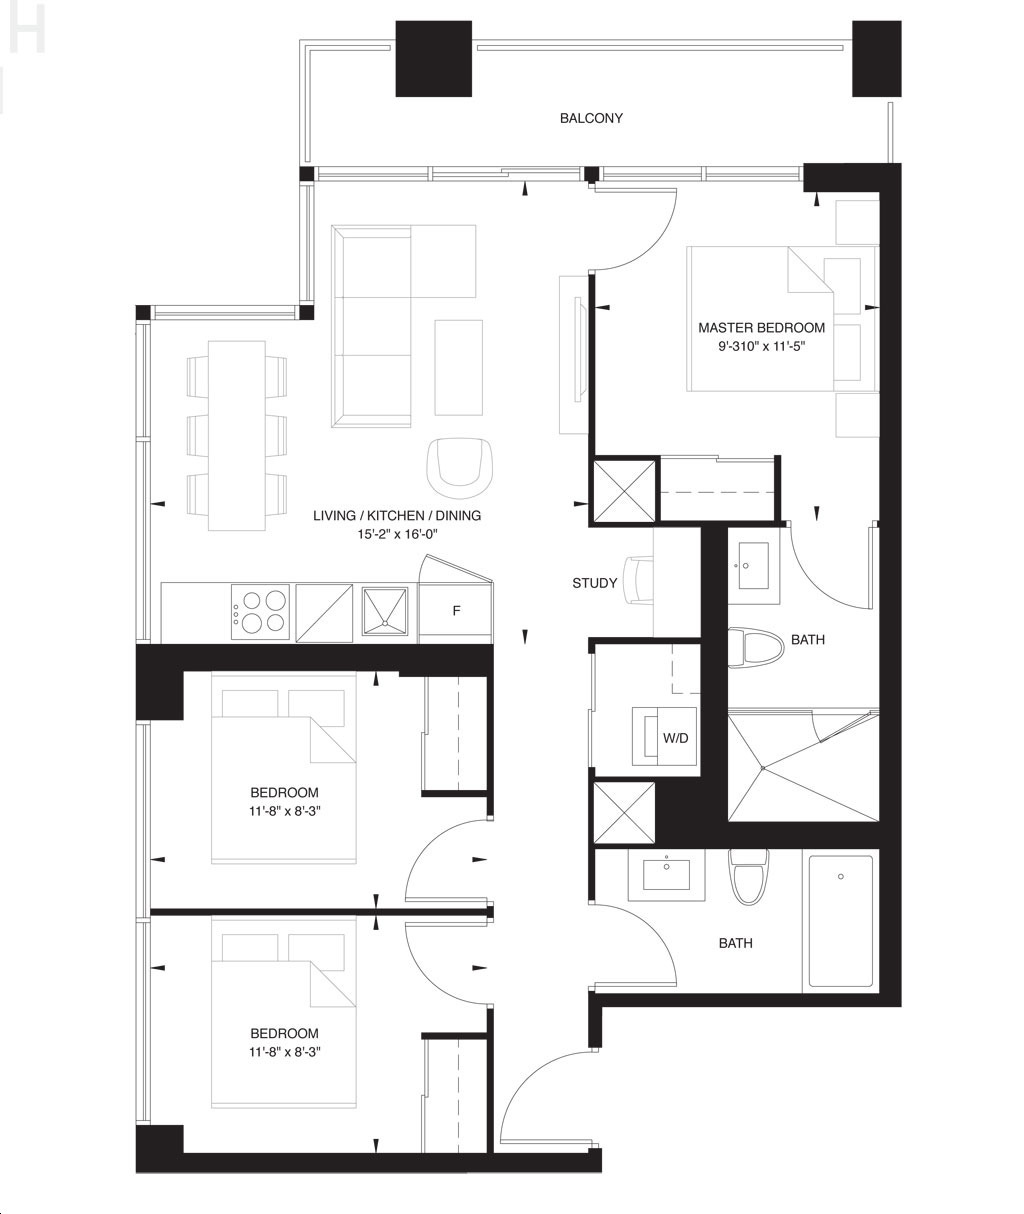 The Forest Hill Condos by CentreCourt Unit 9-M Floorplan 9 bed